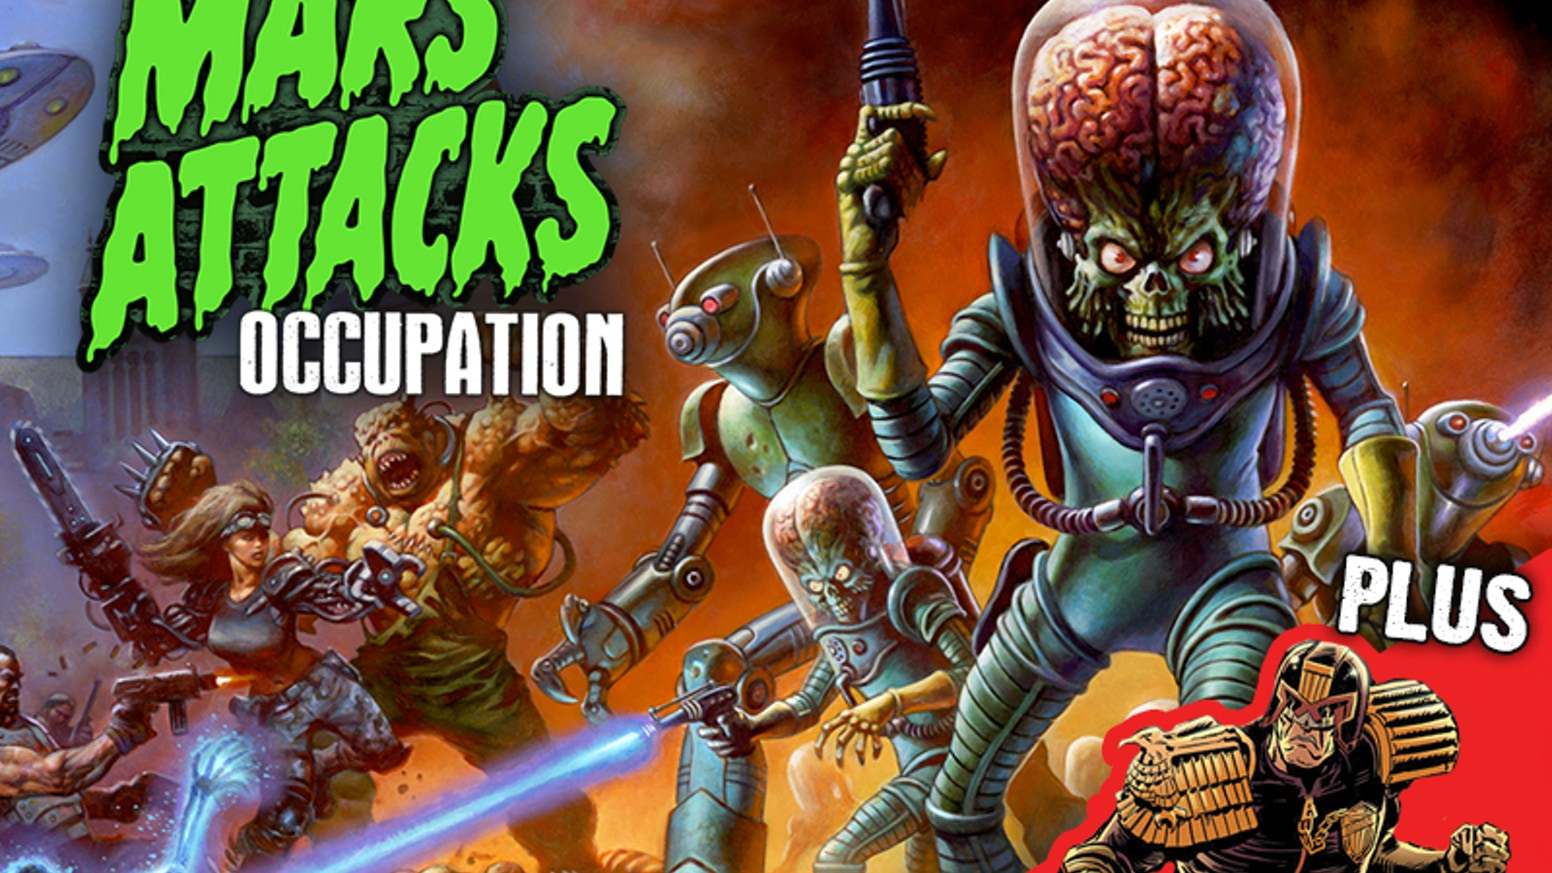 Mars Attacks Occupation Trading Cards By The Topps Company Kickstarter